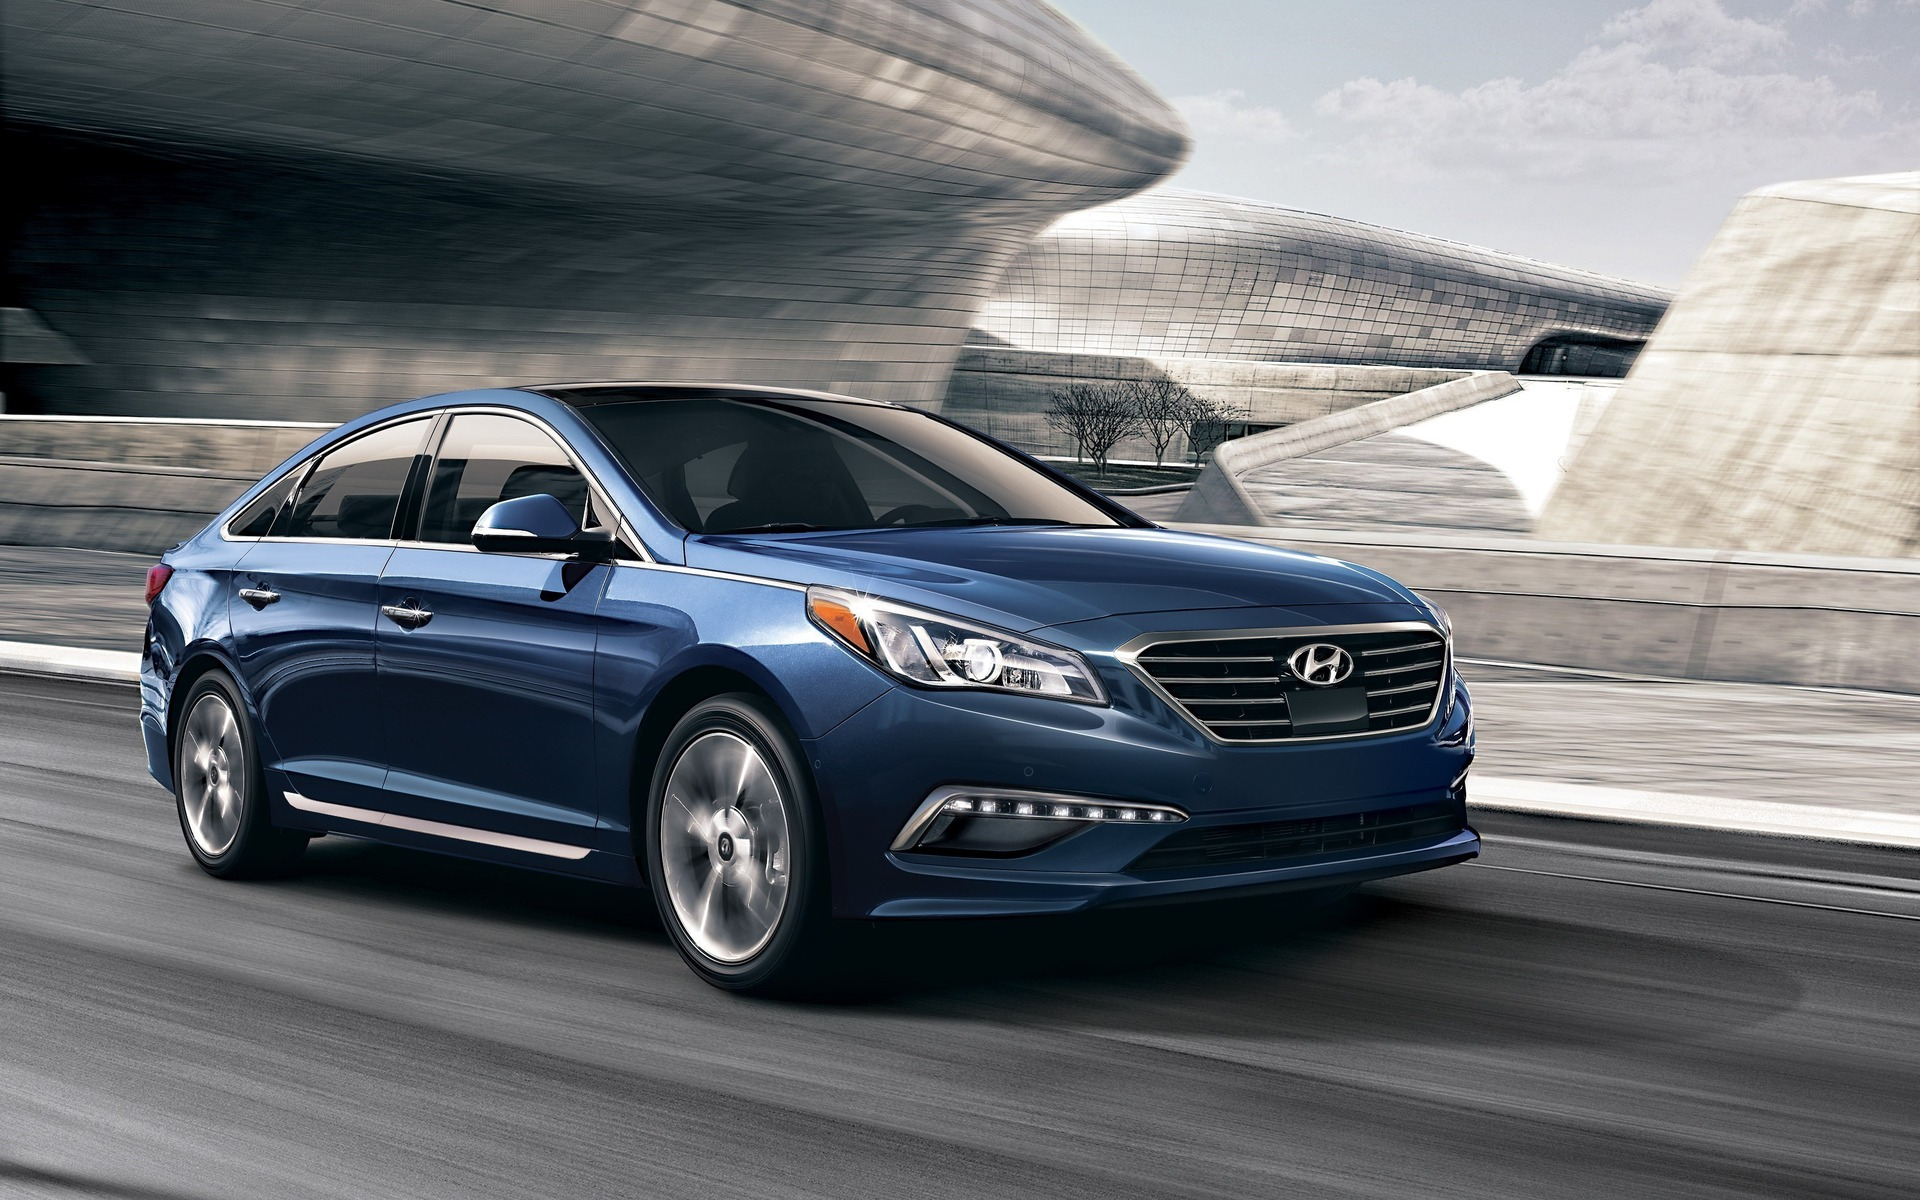 Hyundai Exec Confirms 2014 Genesis Sedan World Premiere at Detroit Auto Show